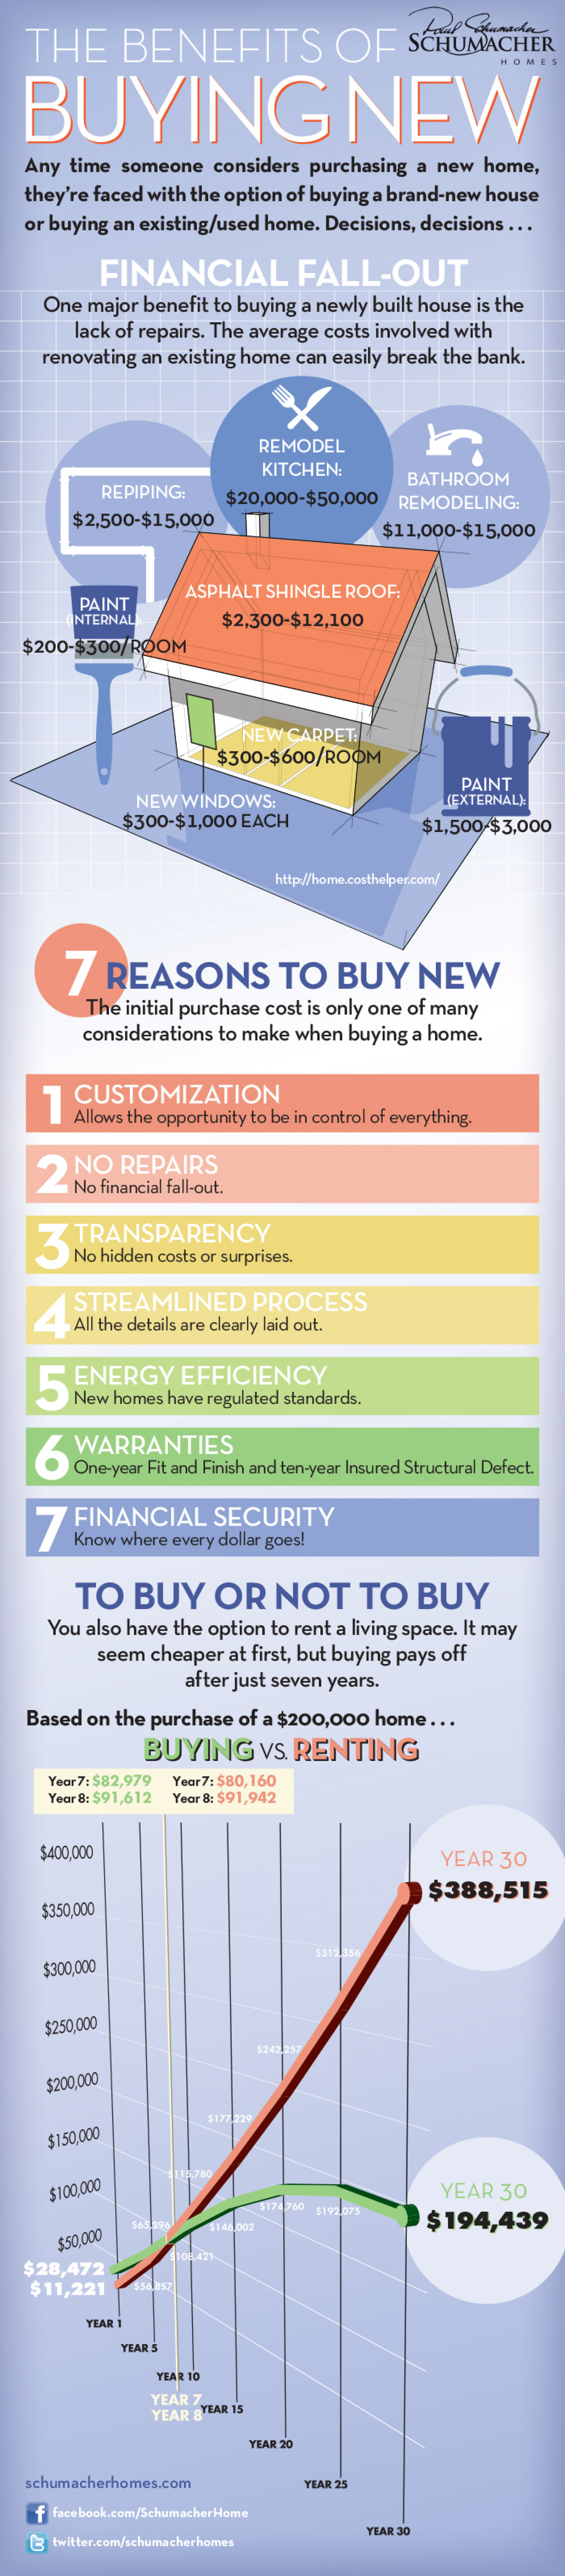 The Benefits of Buying New Infographic